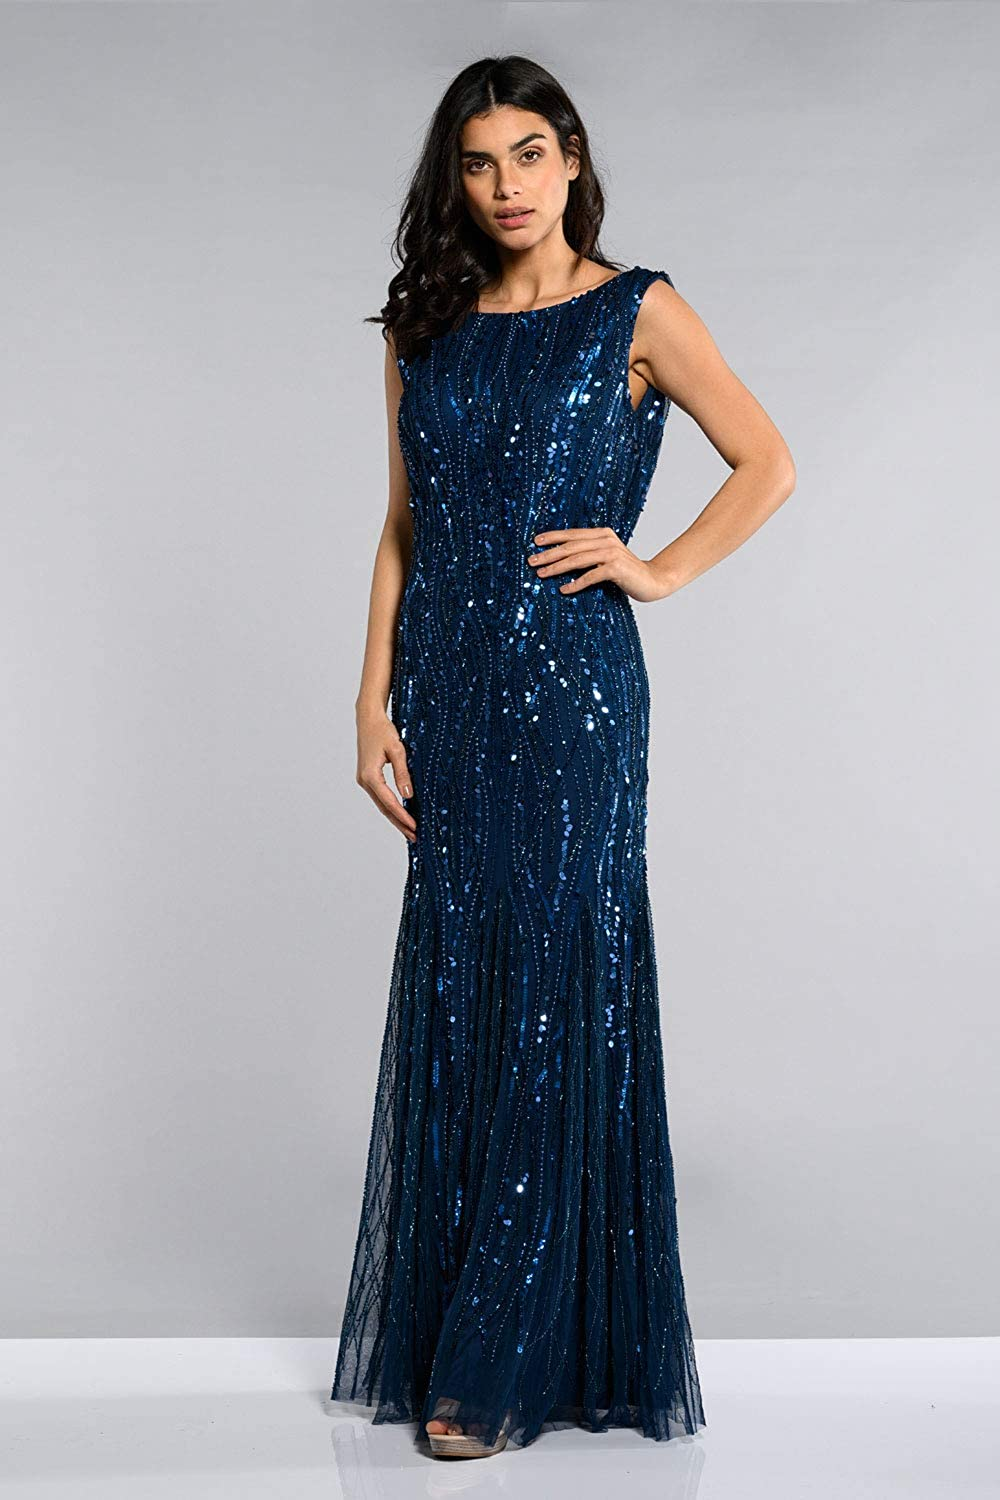 Find Downton Abbey Style Dresses in the UK gatsbylady london Catherine Maxi Prom Dress with Cowl Back Neck in Midnight Blue £179.00 AT vintagedancer.com